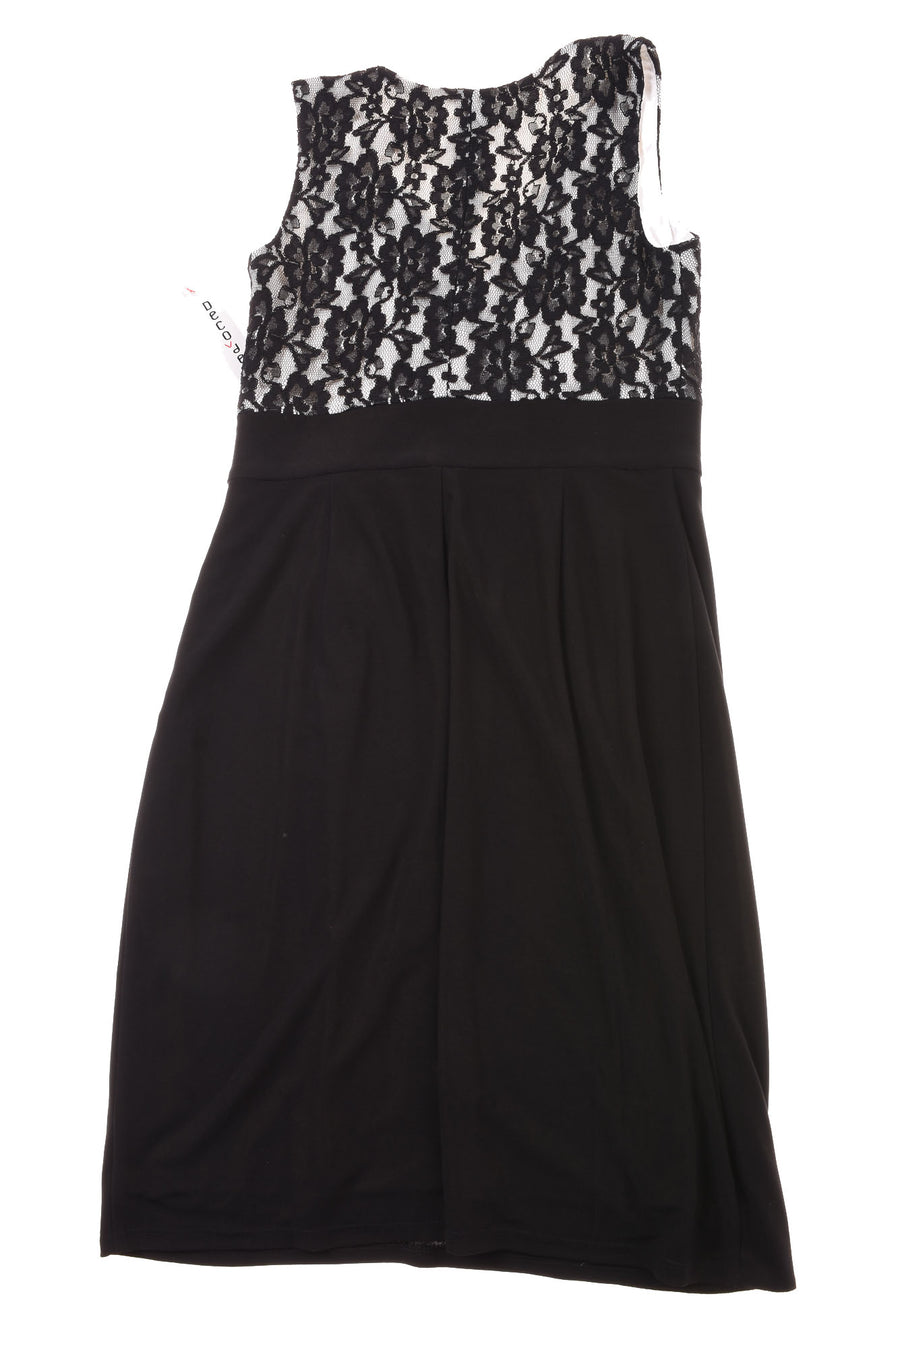 NEW Decode 1.8 Women's Dress 4 Black & White